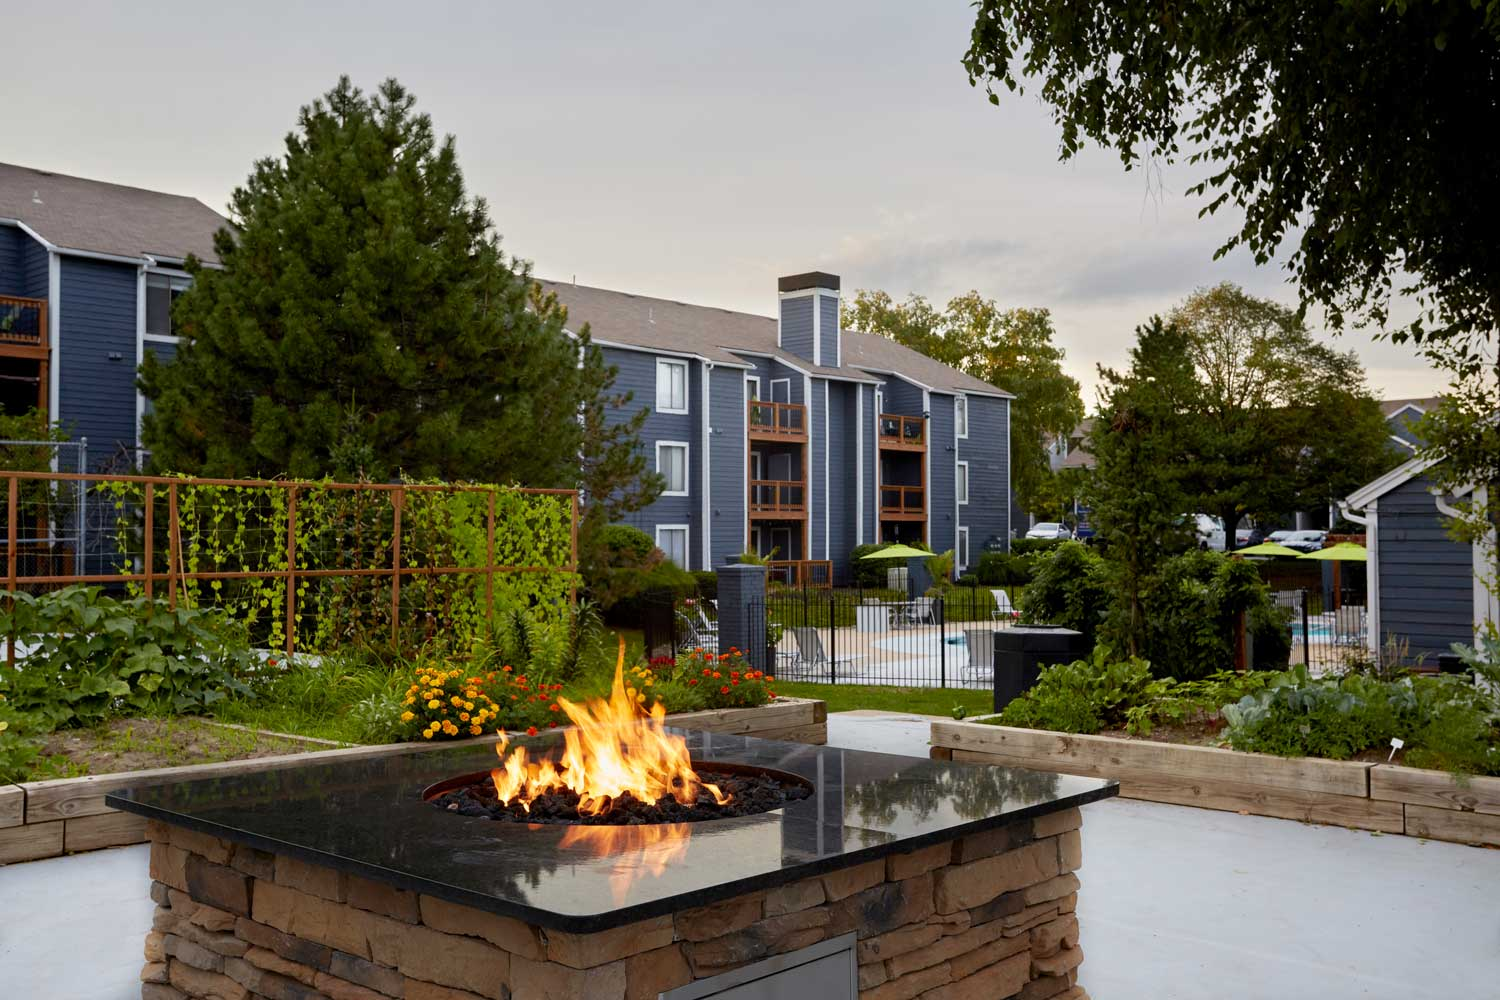 Outdoor Fire Pit at Perry 81 Apartments in Overland Park, Kansas